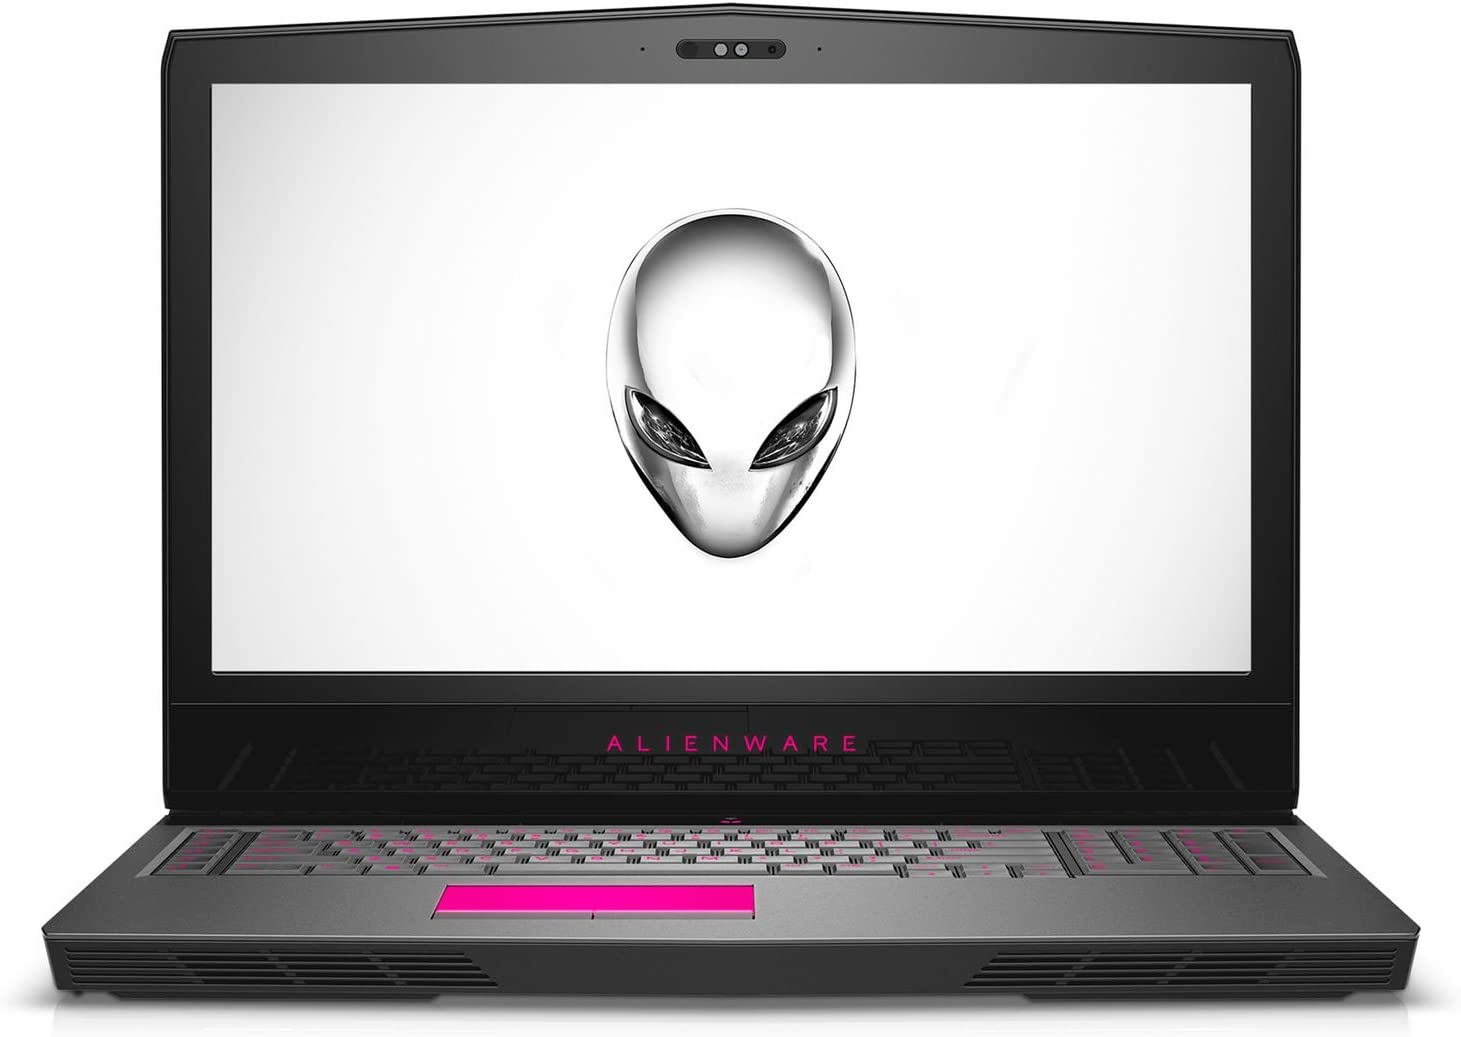 "Alienware 17 R4 17.3"" Full HD Gaming Laptop, 7th Gen. Intel Core i7-7700HQ Processor, 16GB Memory, 256GB SSD + 1TB Hard Drive, 8GB NVIDIA GeForce GTX 1070, Windows 10"